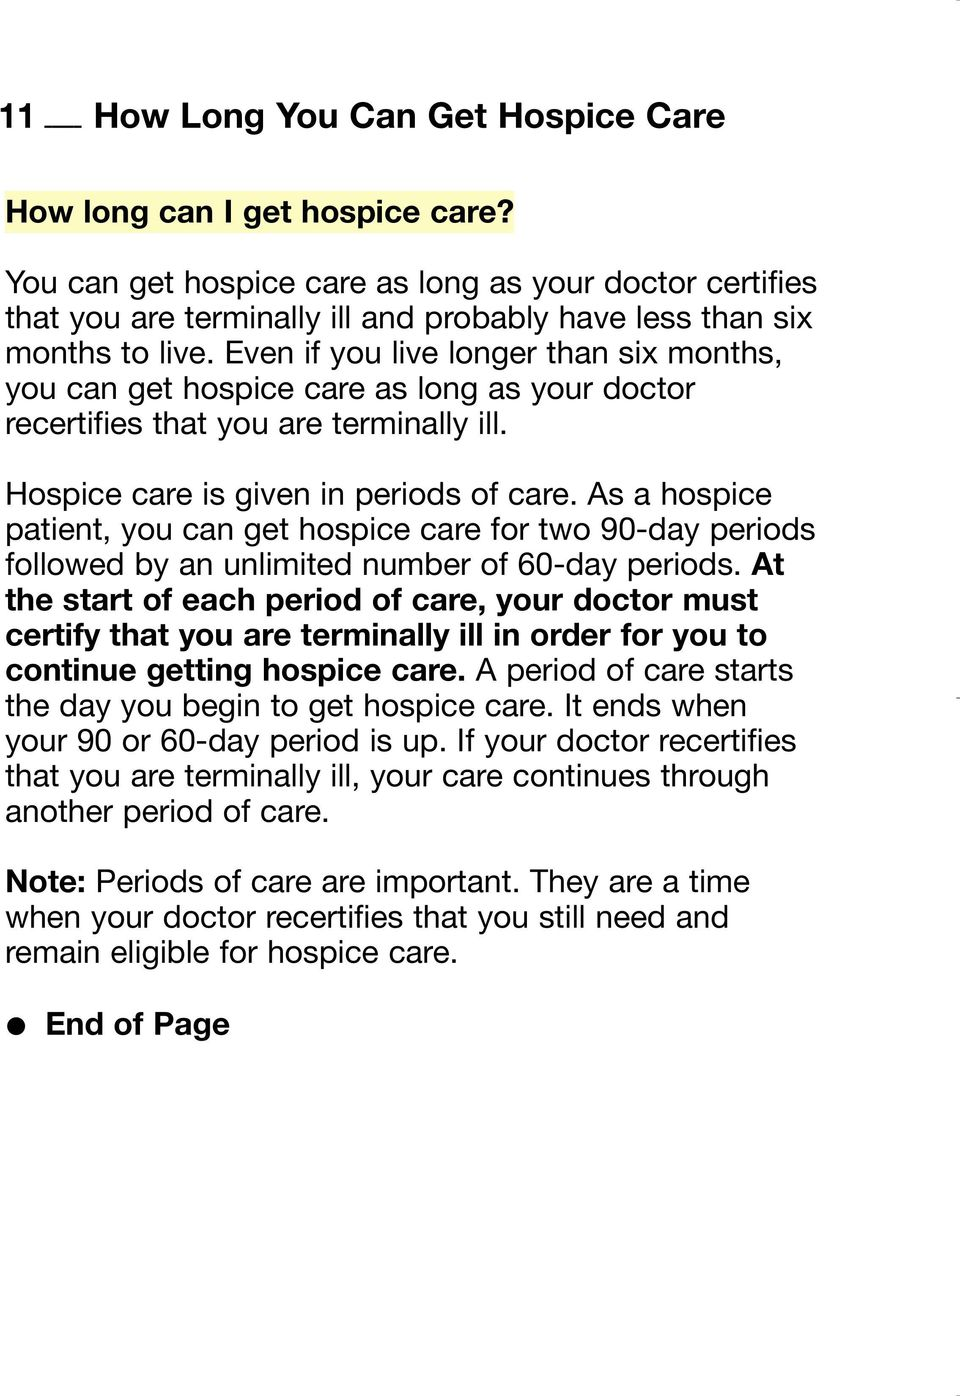 Even if you live longer than six months, you can get hospice care as long as your doctor recertifies that you are terminally ill. Hospice care is given in periods of care.